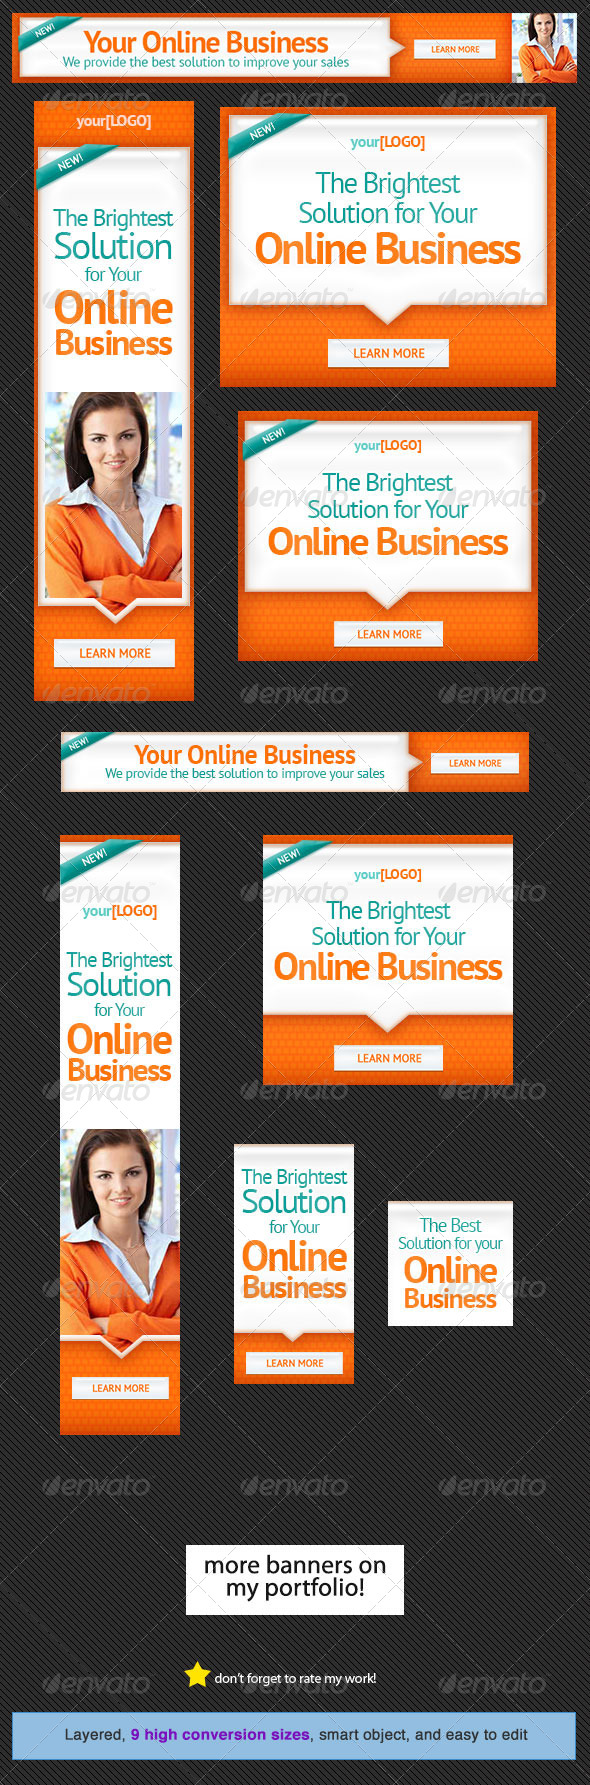 Corporate Web Banner Design Template PSD   Buy and Download: http://graphicriver.net/item/corporate-web-banner-design-template-21/5350705?WT.ac=category_thumb&WT.z_author=admiral_adictus&ref=ksioks